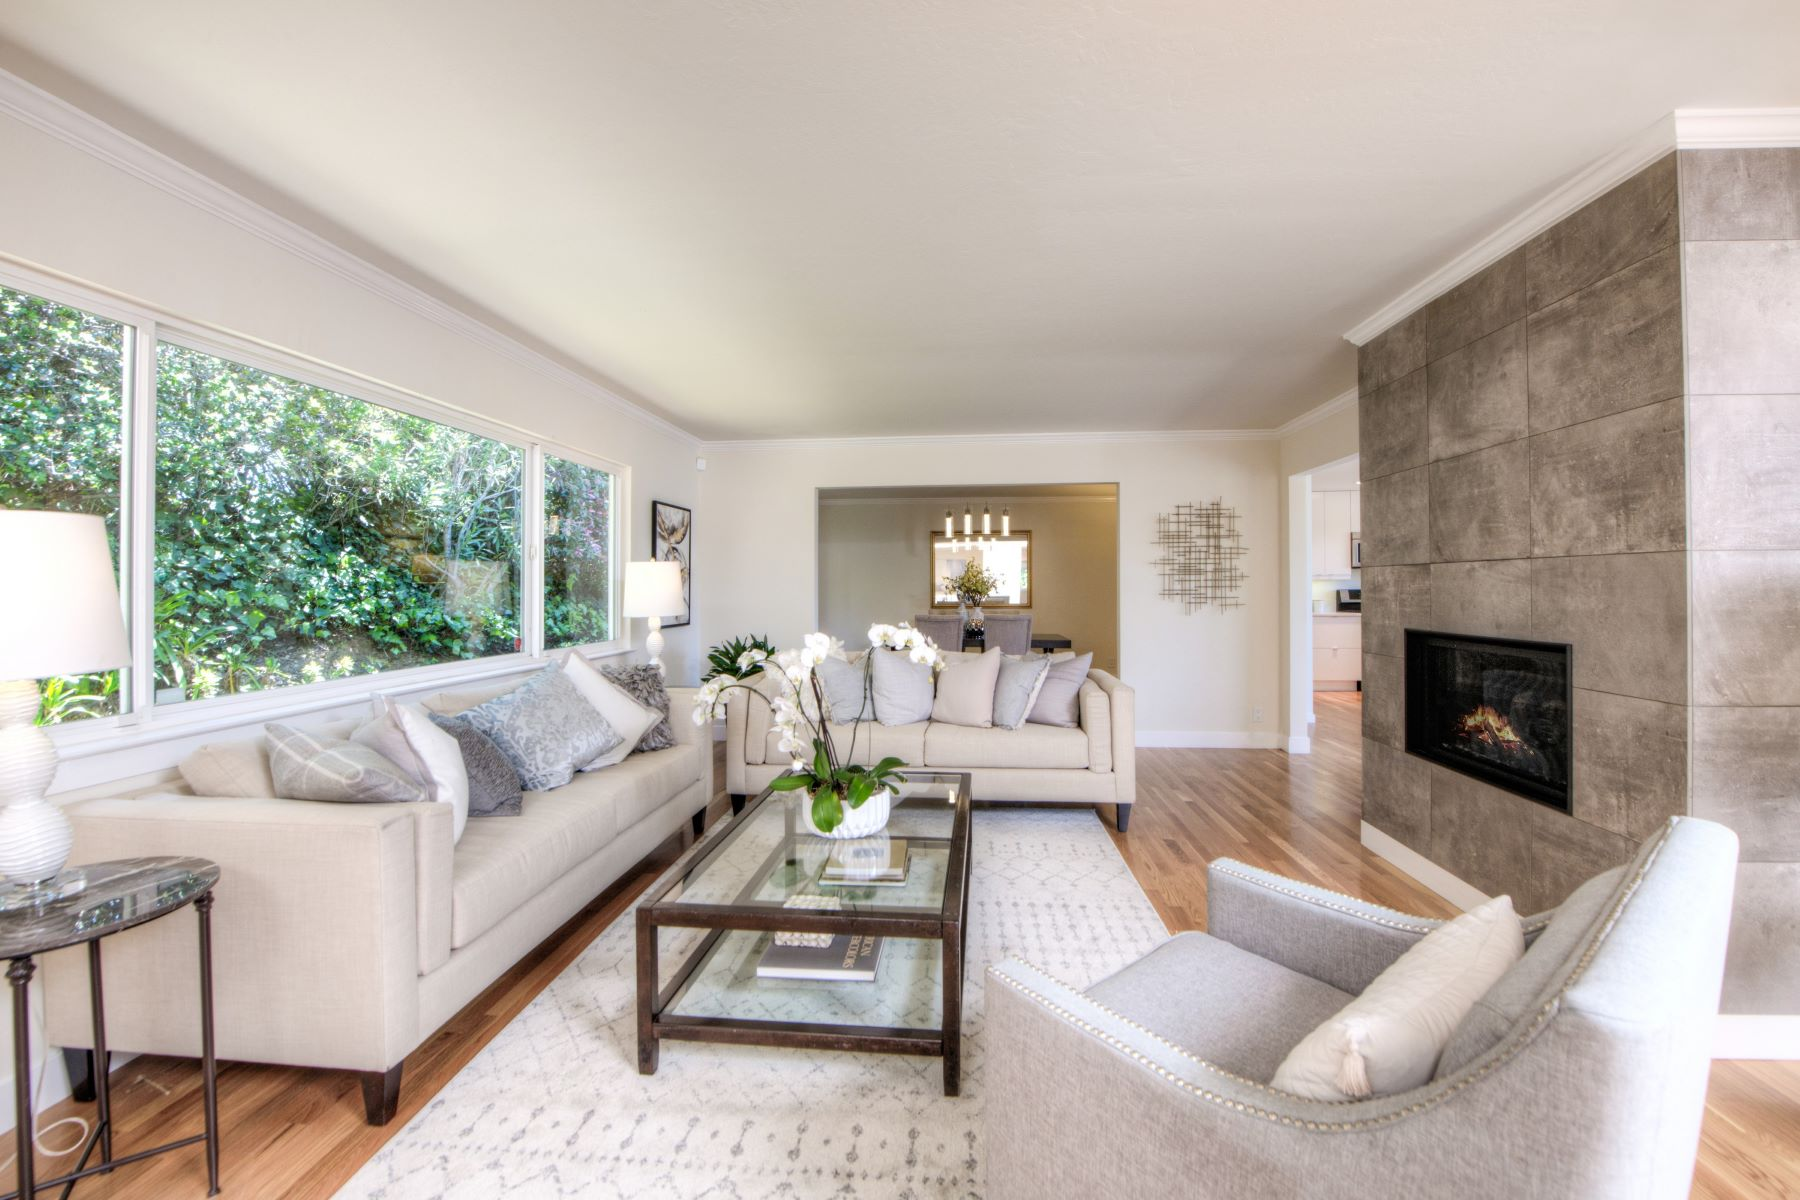 Single Family Homes for Sale at Unobstructed Mt. Tam Views 295 Vista Grande Greenbrae, California 94904 United States